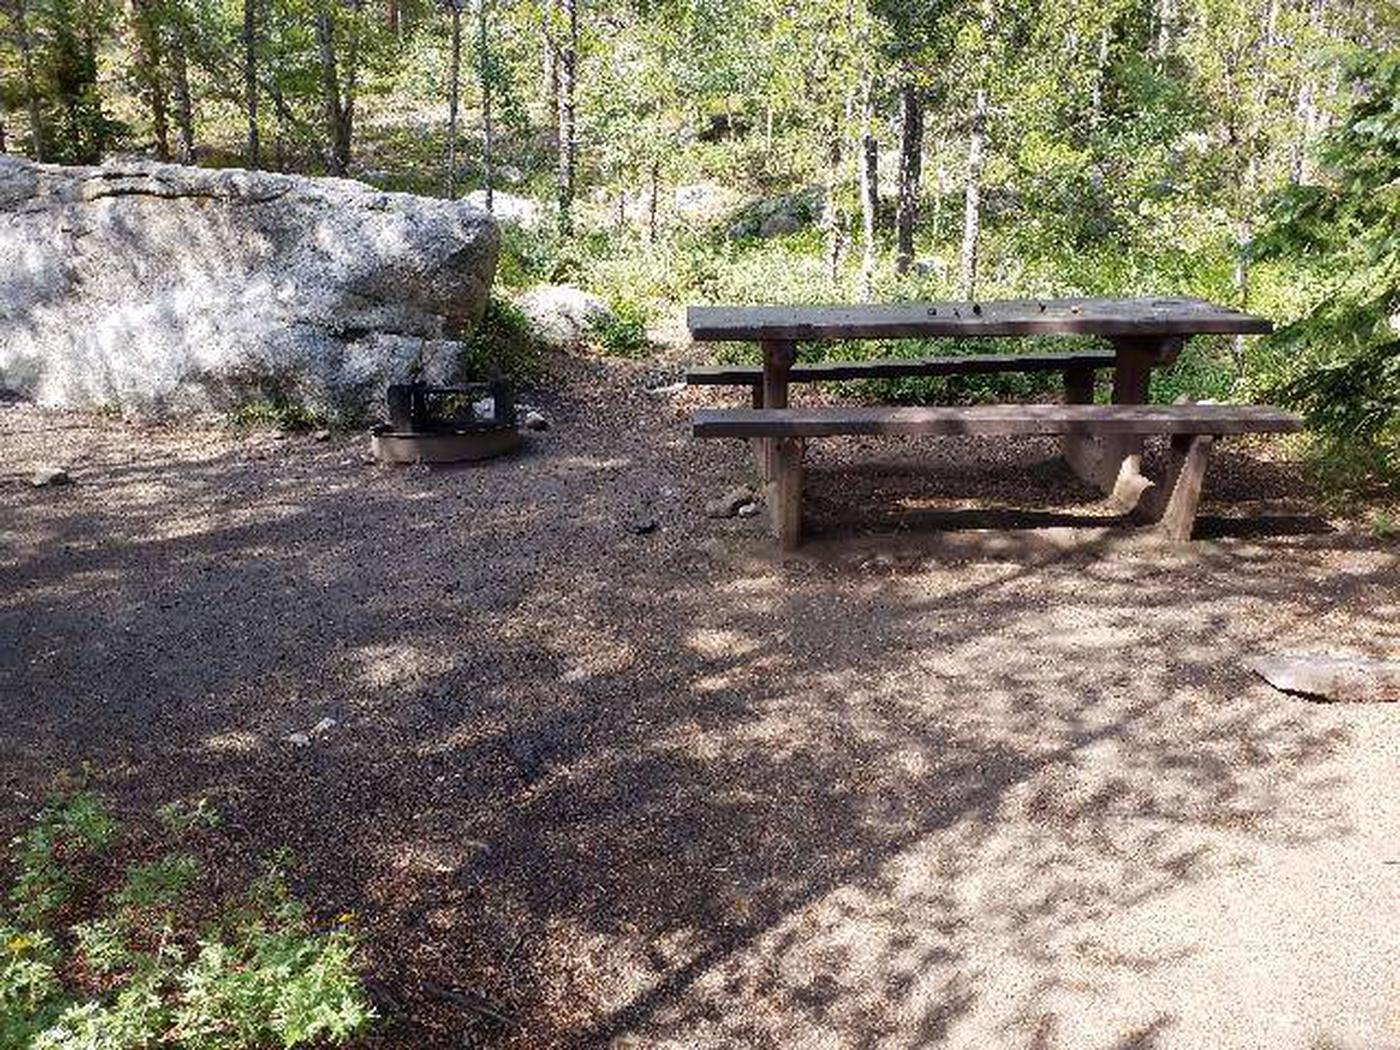 May Queen Campground, site 2